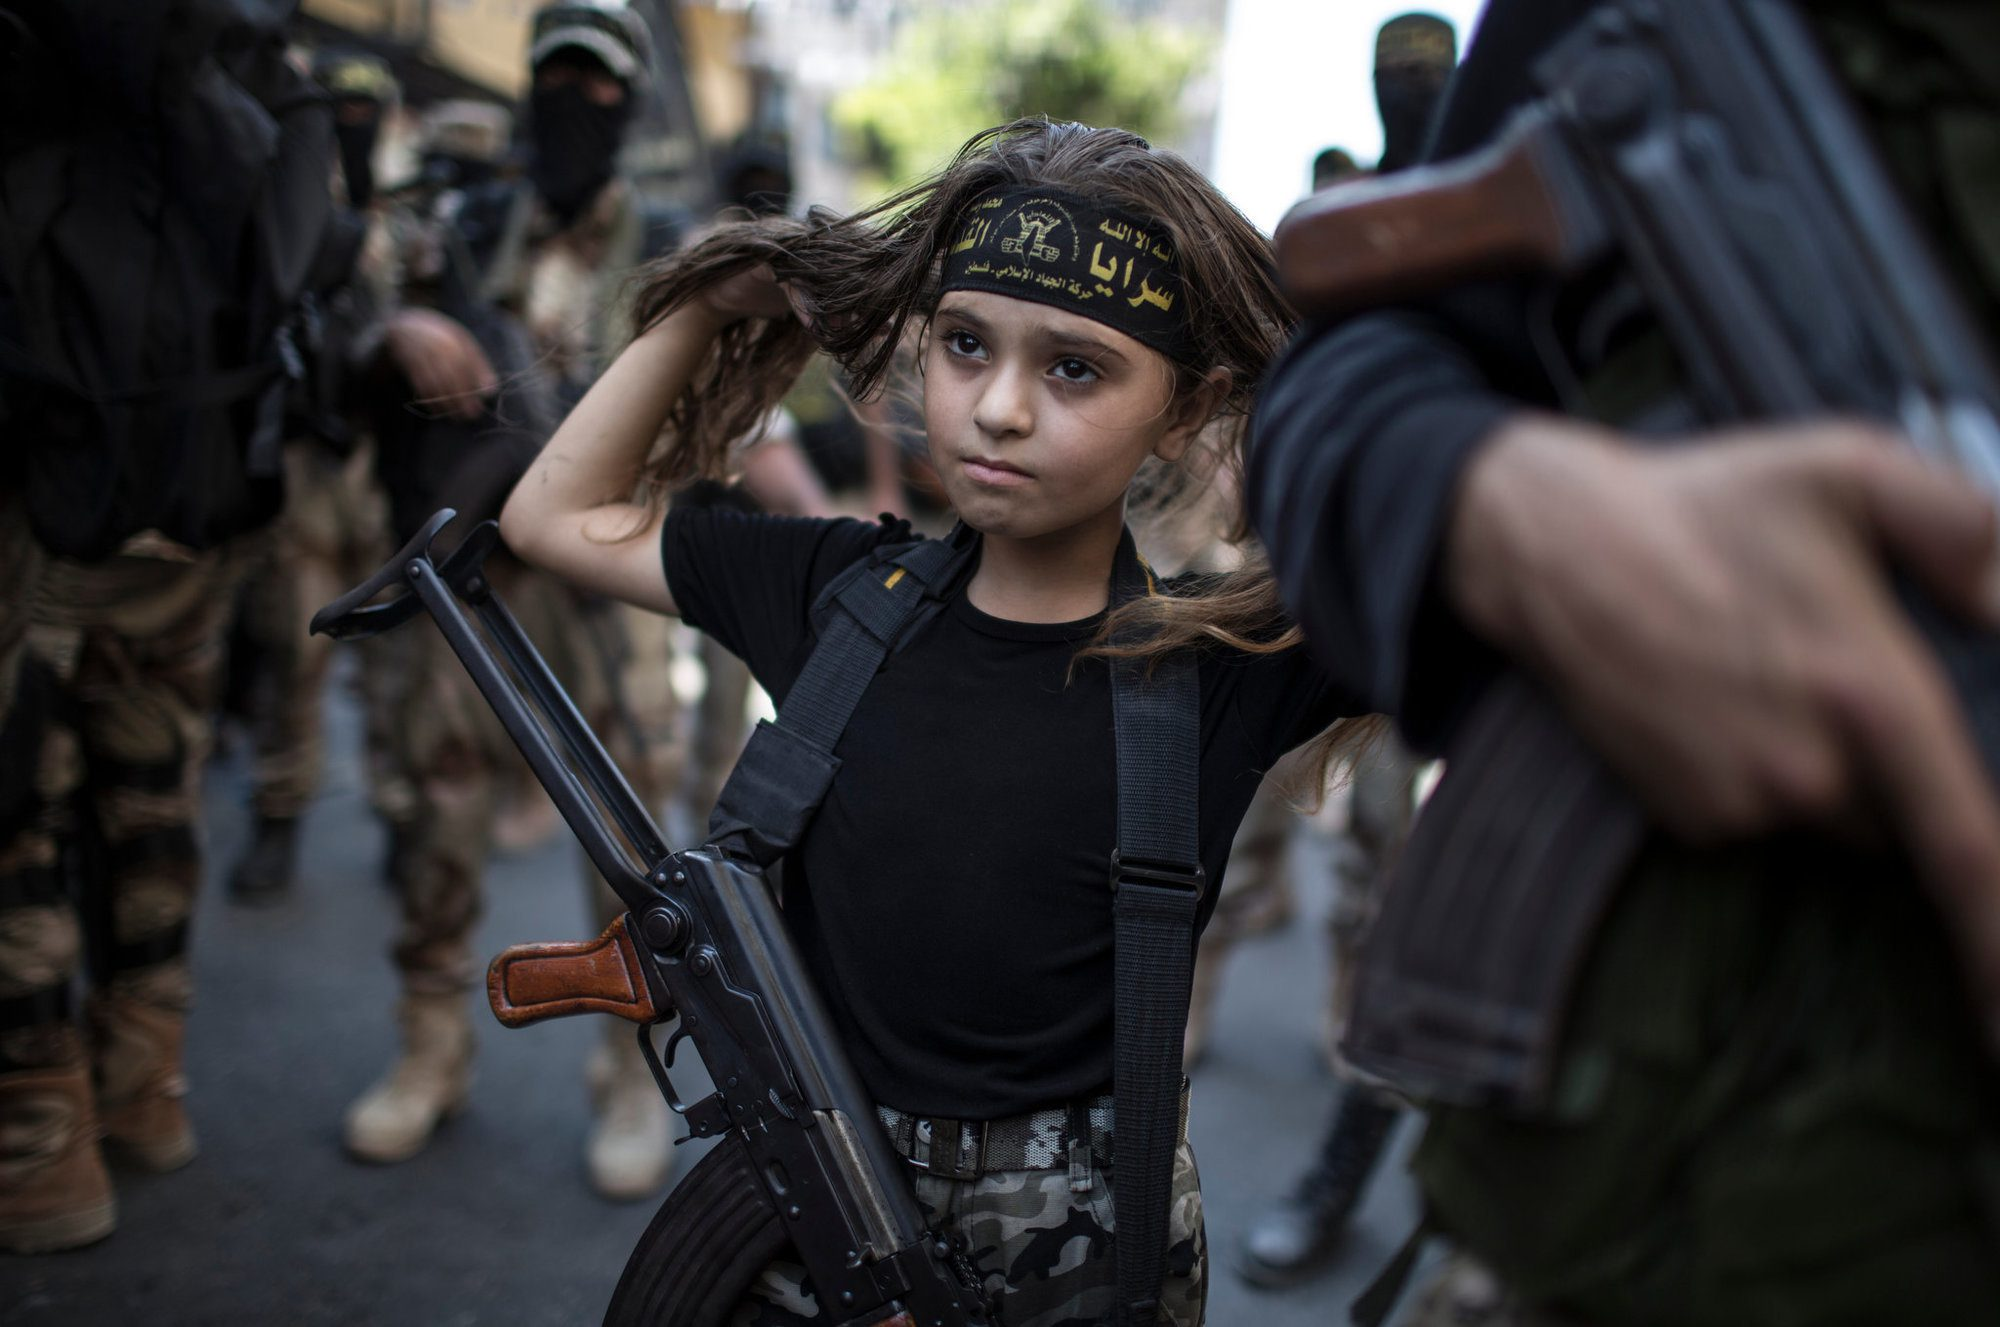 A Palestinian girl with an AK-47 in Gaza City.